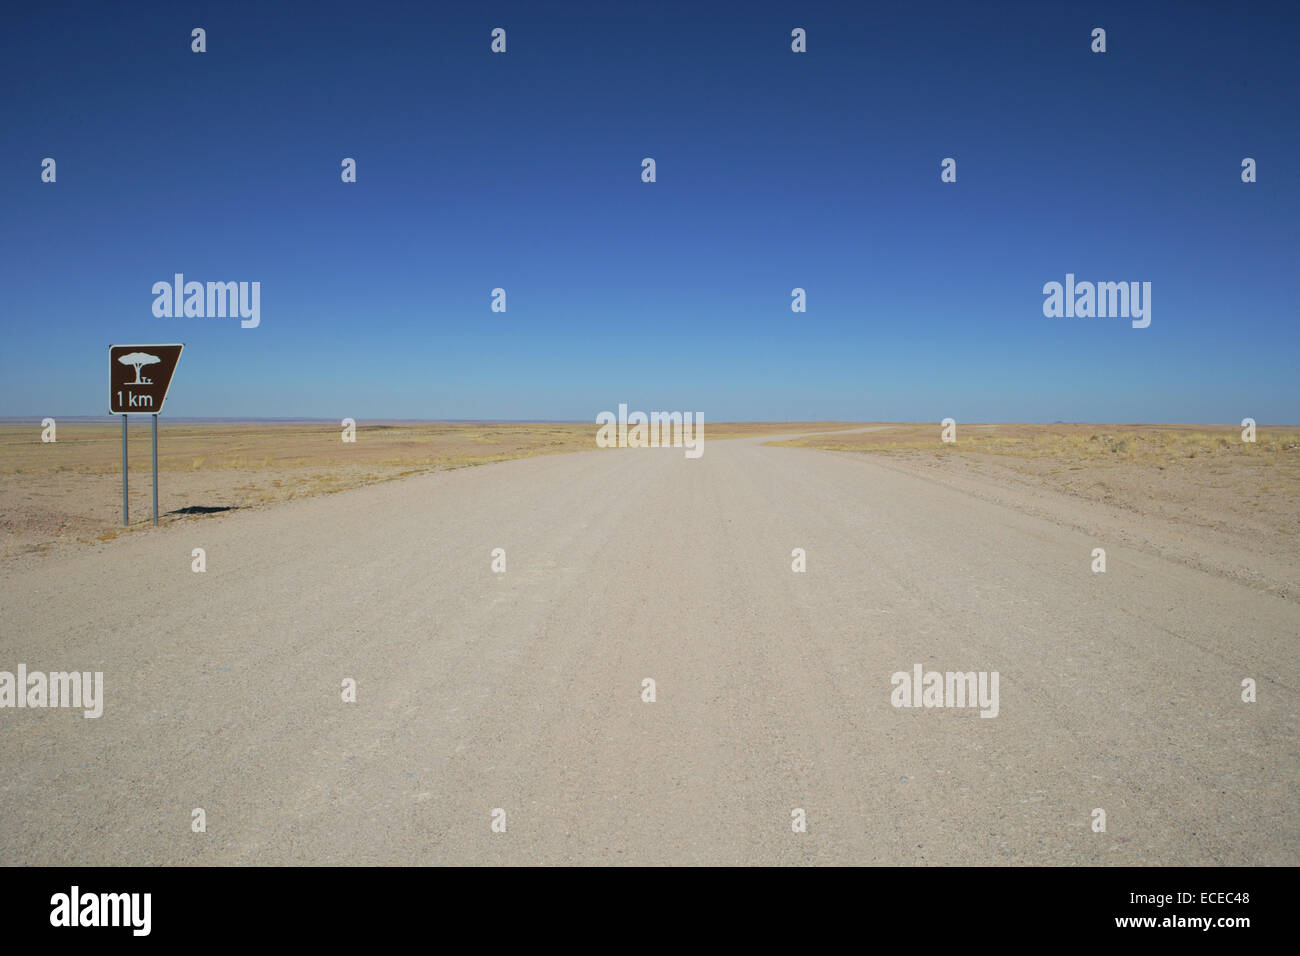 Namibia, View along empty desert road with rest area sign - Stock Image